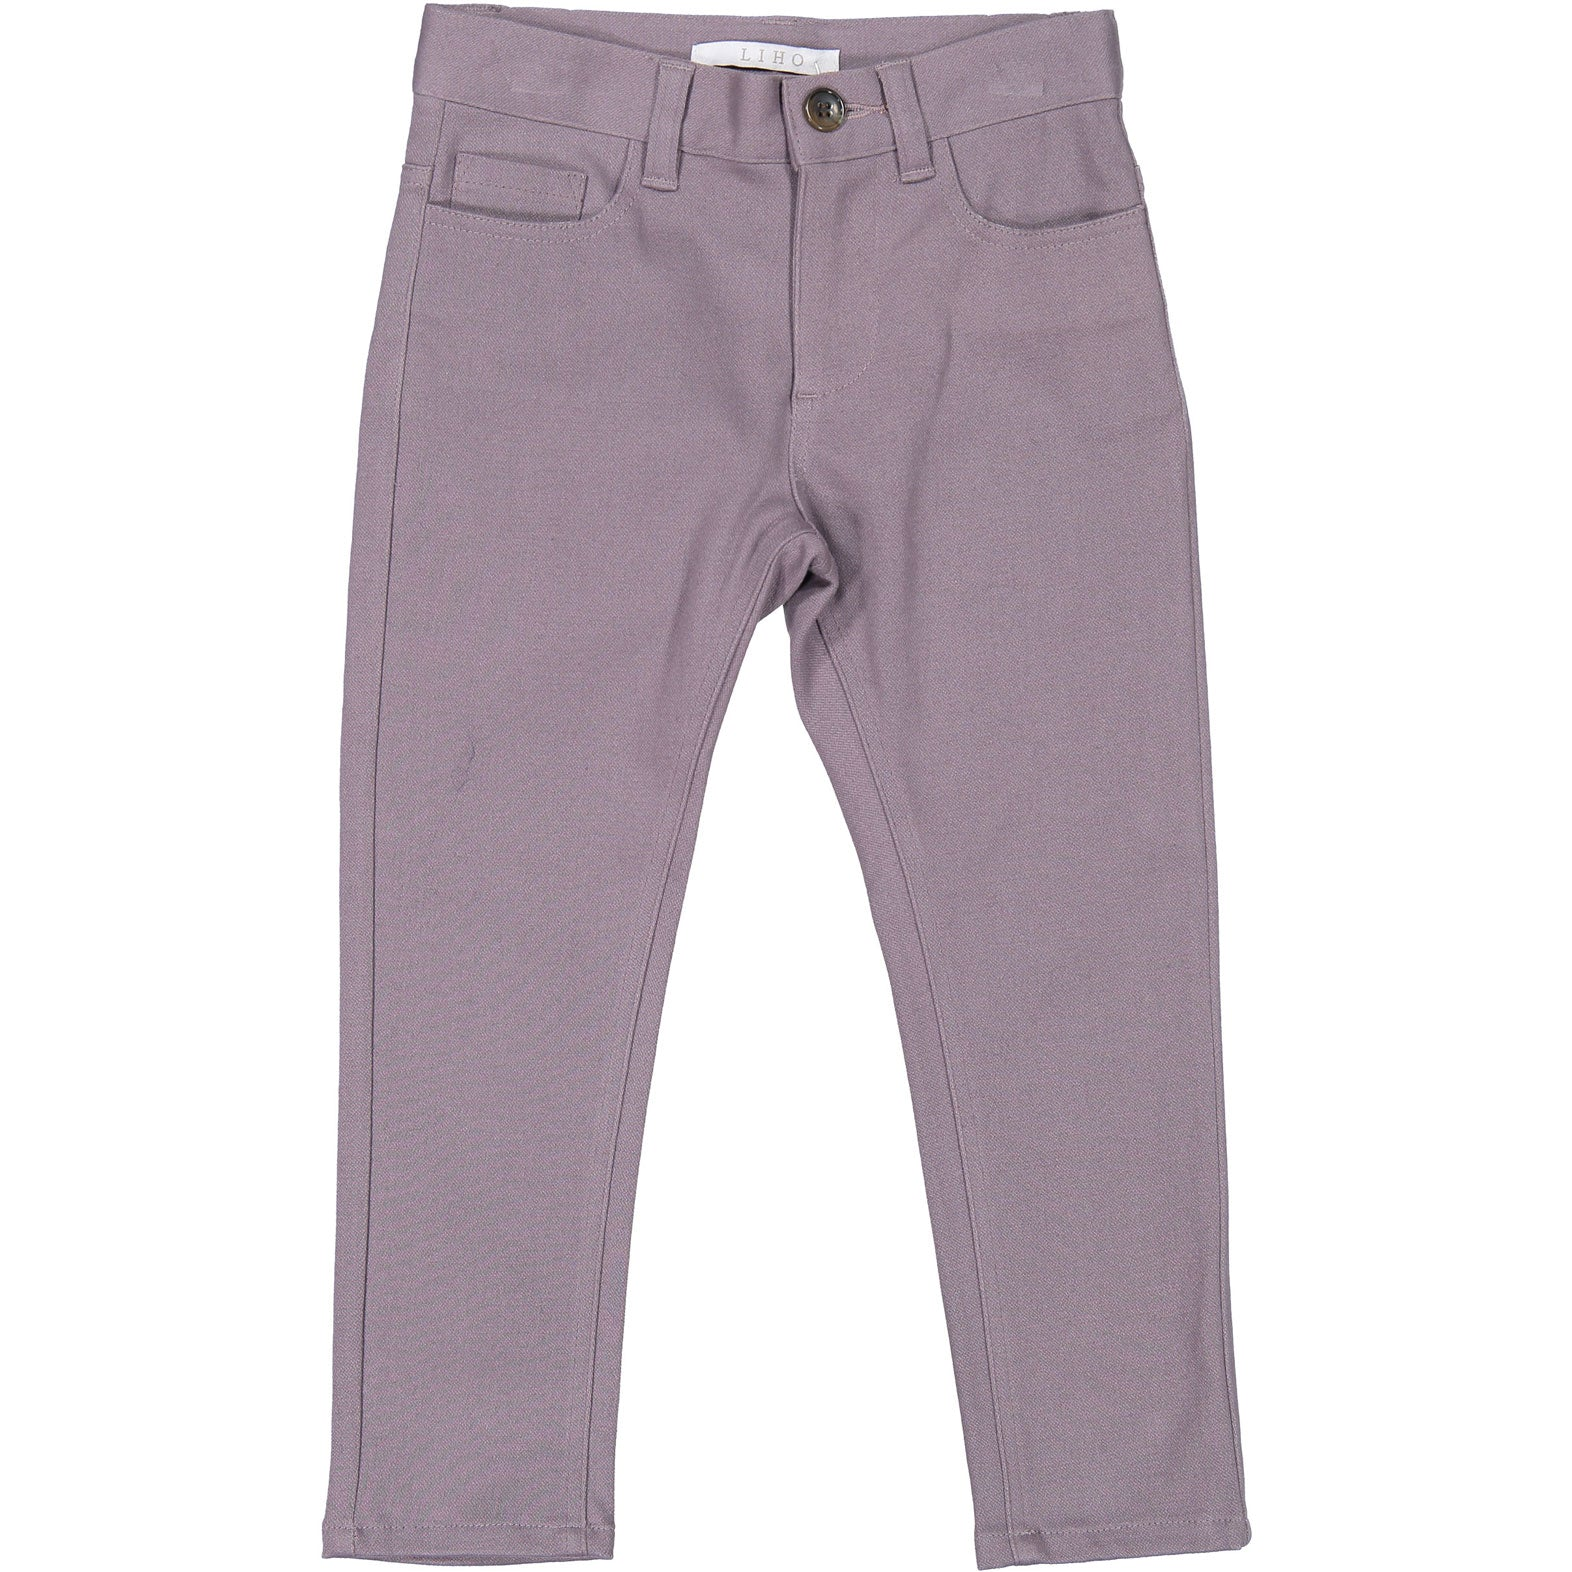 Liho Dark Grey Trousers - Ladida